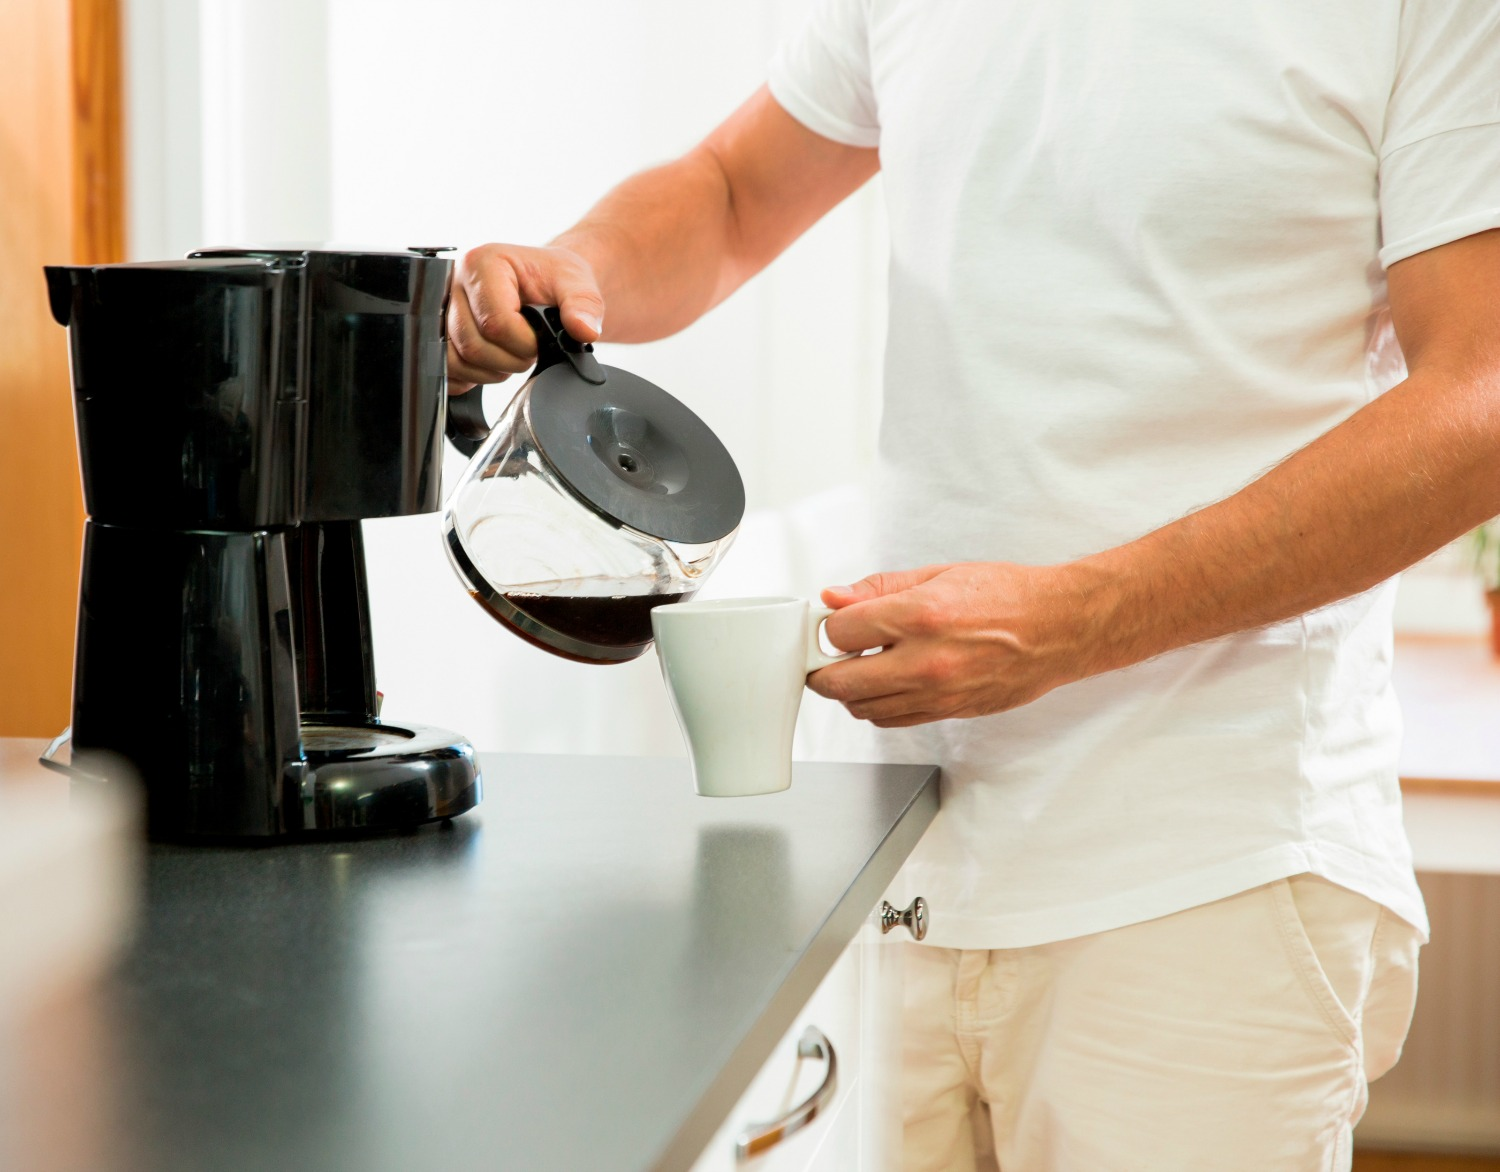 Cockroaches And Coffee Machines: Coffee & Roaches Go Hand In